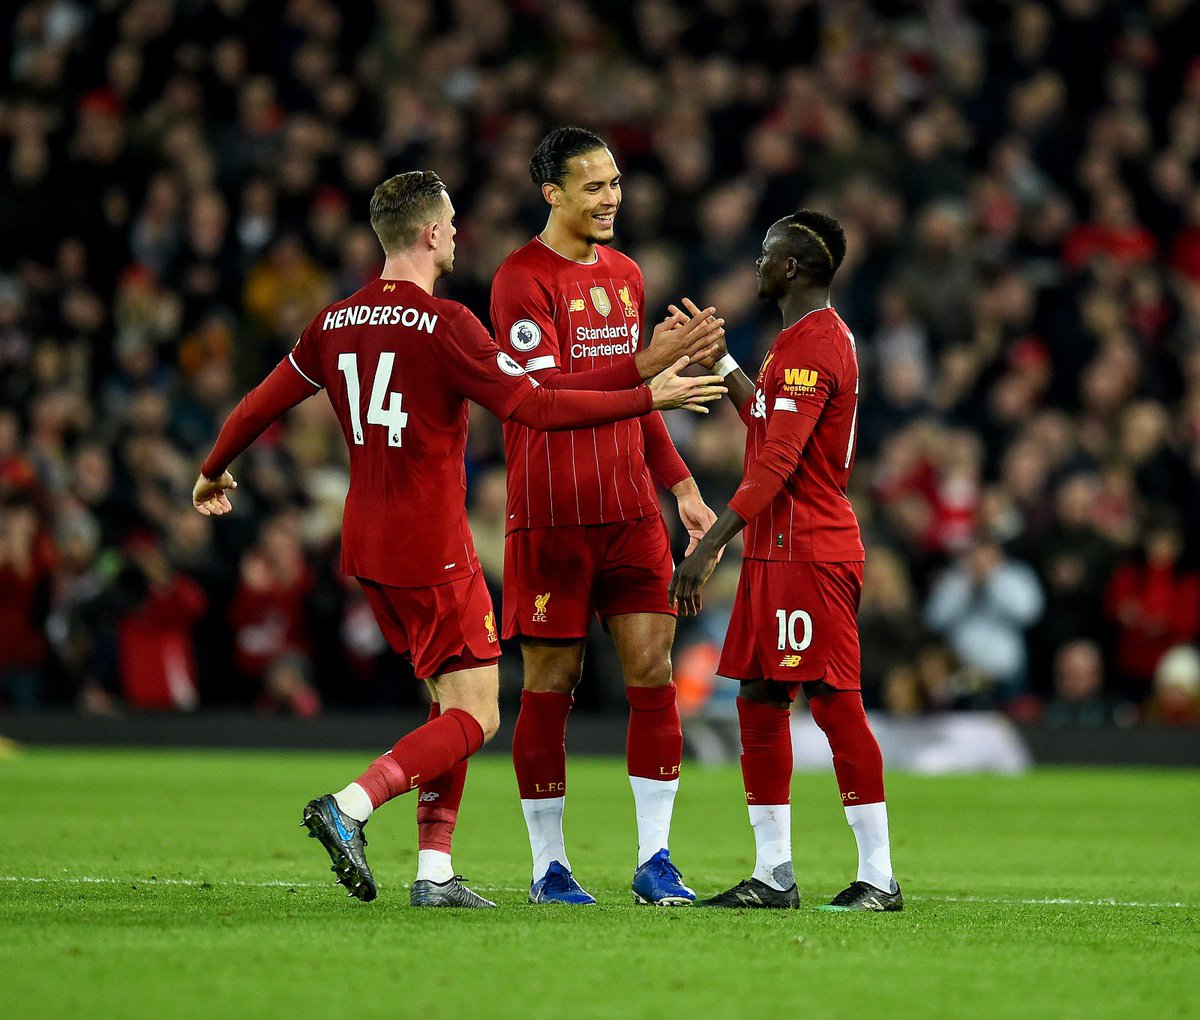 Nice to finish 2019 with a big win! Proud to reach 100 @LFC appearances for this great club #YNWA 💫